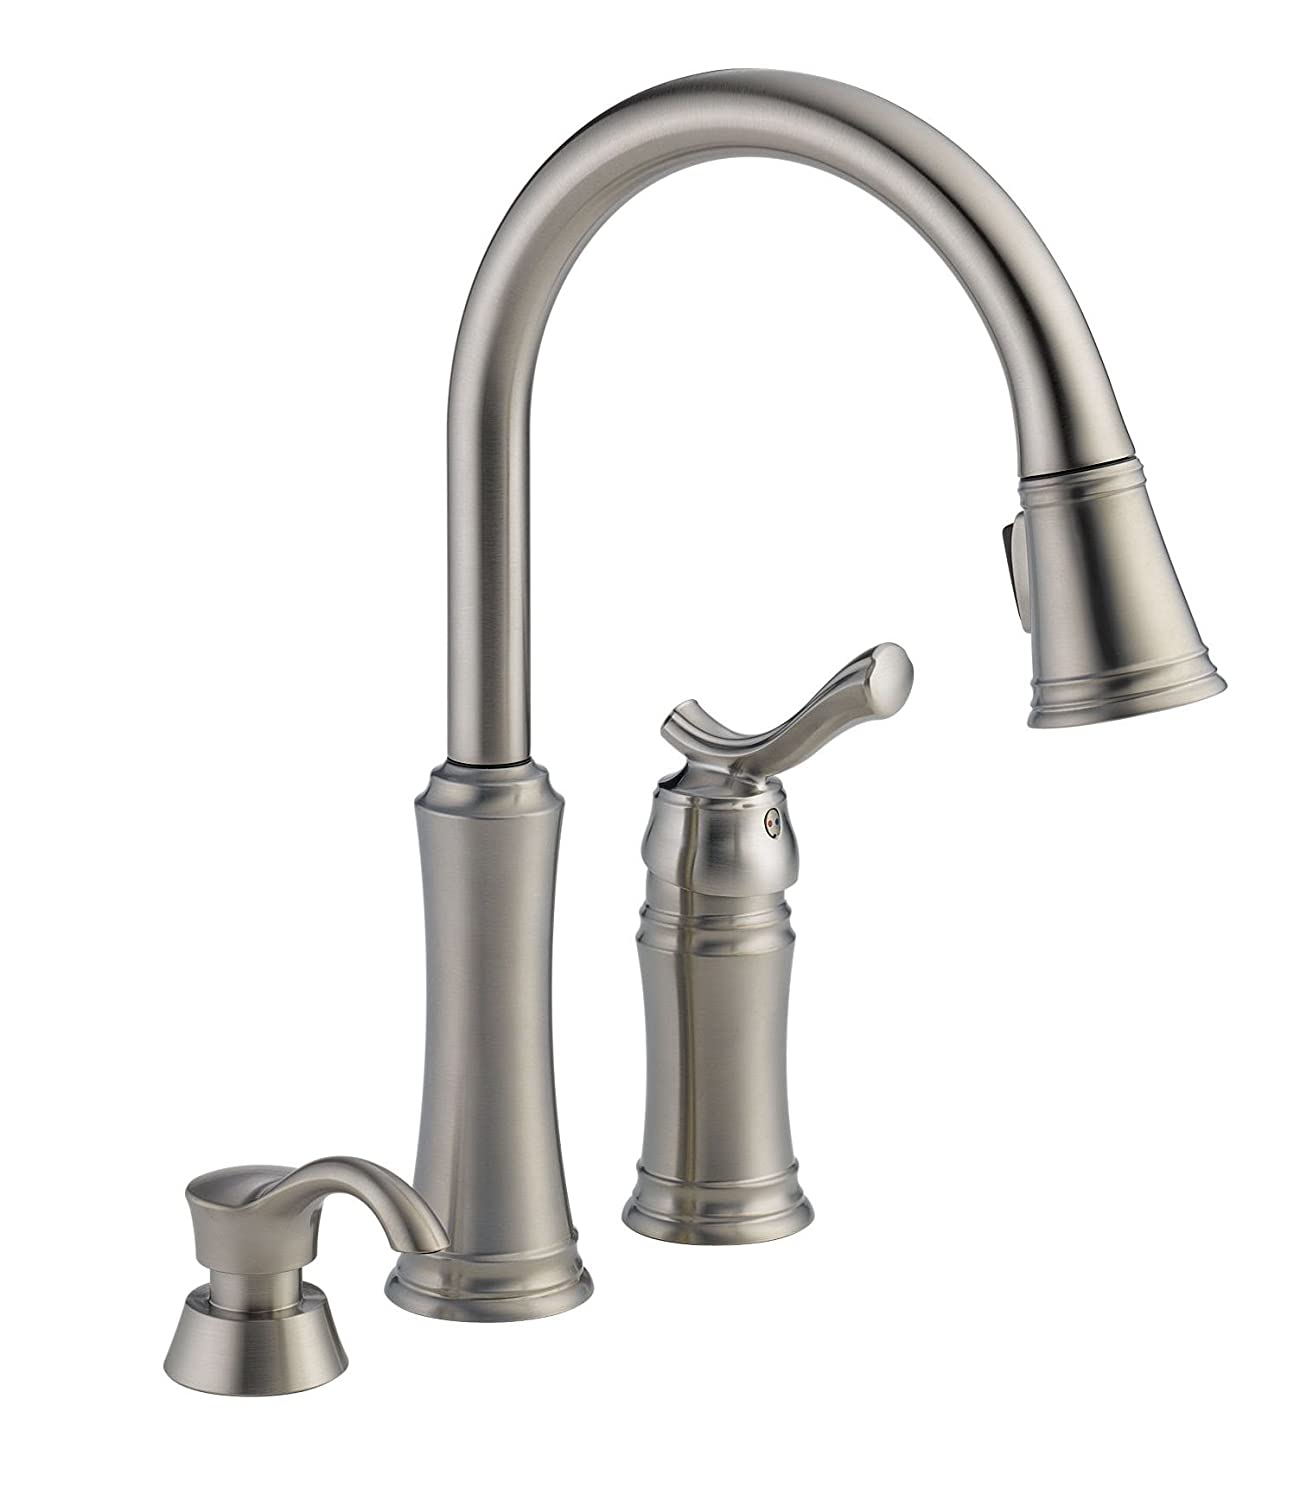 Delta Faucet 59963-SSSD-DST Modern Heritage Pull-Down Kitchen Faucet with Soap Dispenser, Stainless